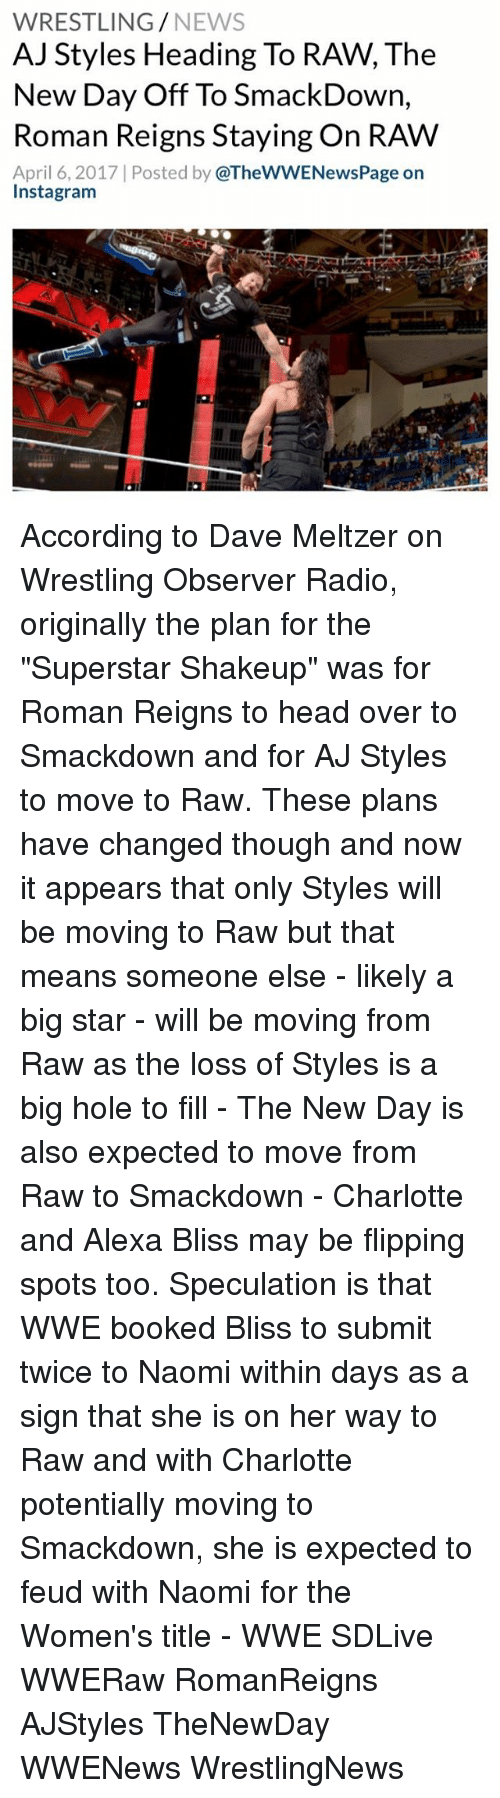 """Head, Instagram, and Memes: WRESTLING  NEWS  AJ Styles Heading To RAW, The  New Day Off To SmackDown,  Roman Reigns Staying On RAW  April 6, 2017 Posted by  @TheWWENewsPage on  Instagram According to Dave Meltzer on Wrestling Observer Radio, originally the plan for the """"Superstar Shakeup"""" was for Roman Reigns to head over to Smackdown and for AJ Styles to move to Raw. These plans have changed though and now it appears that only Styles will be moving to Raw but that means someone else - likely a big star - will be moving from Raw as the loss of Styles is a big hole to fill - The New Day is also expected to move from Raw to Smackdown - Charlotte and Alexa Bliss may be flipping spots too. Speculation is that WWE booked Bliss to submit twice to Naomi within days as a sign that she is on her way to Raw and with Charlotte potentially moving to Smackdown, she is expected to feud with Naomi for the Women's title - WWE SDLive WWERaw RomanReigns AJStyles TheNewDay WWENews WrestlingNews"""